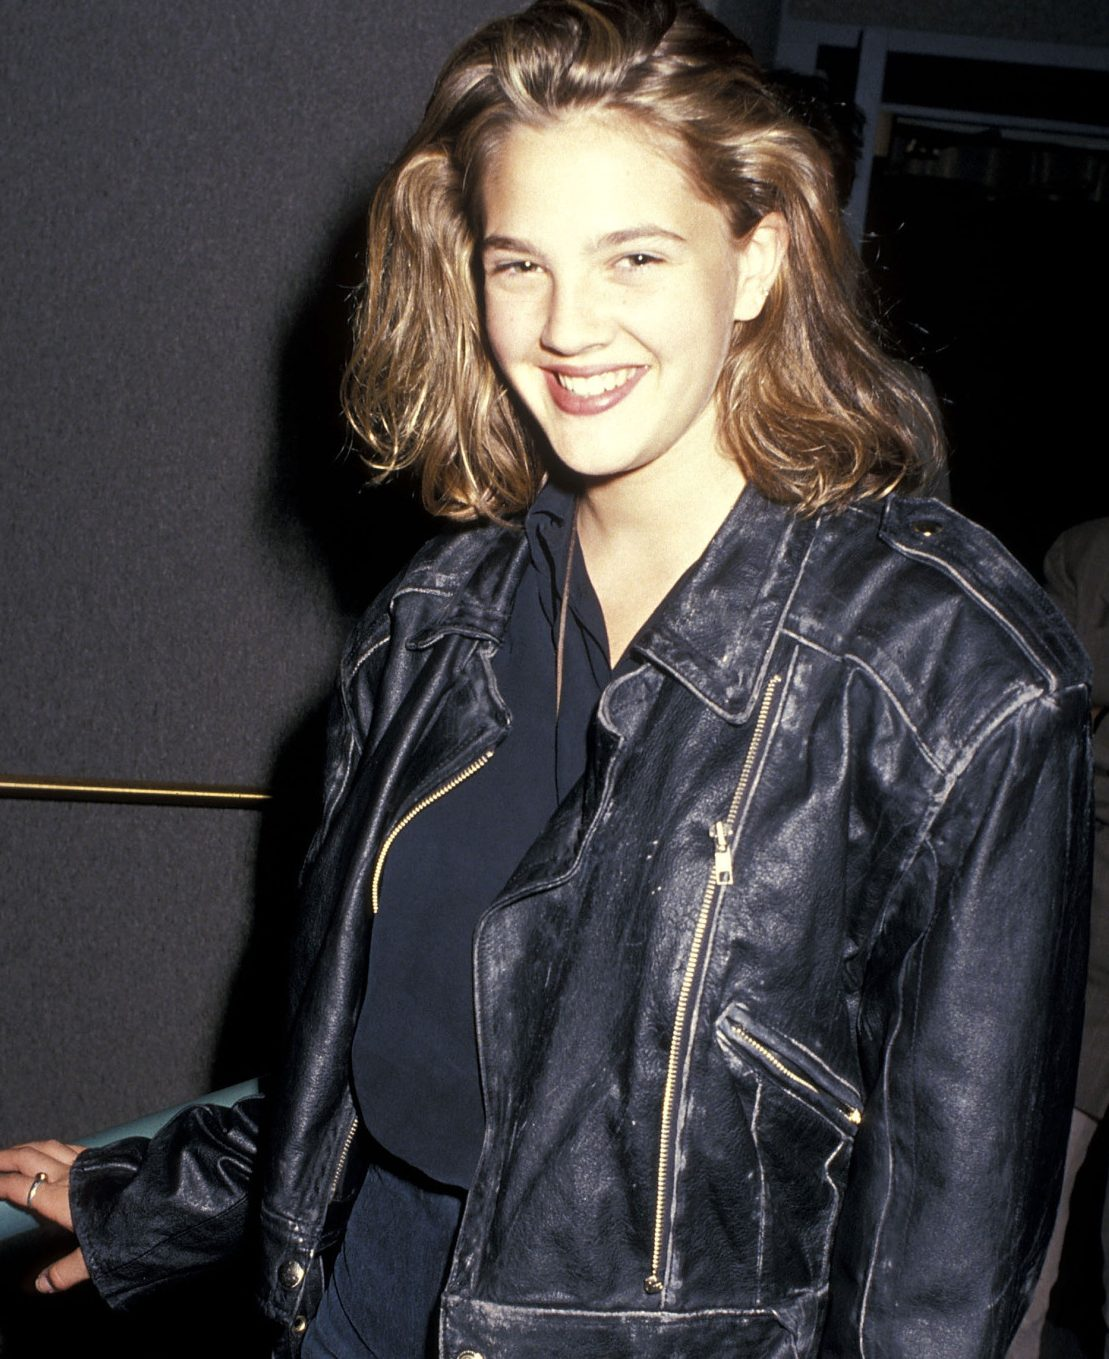 eman1 e1584446921352 20 Things You Might Not Have Realised About Drew Barrymore